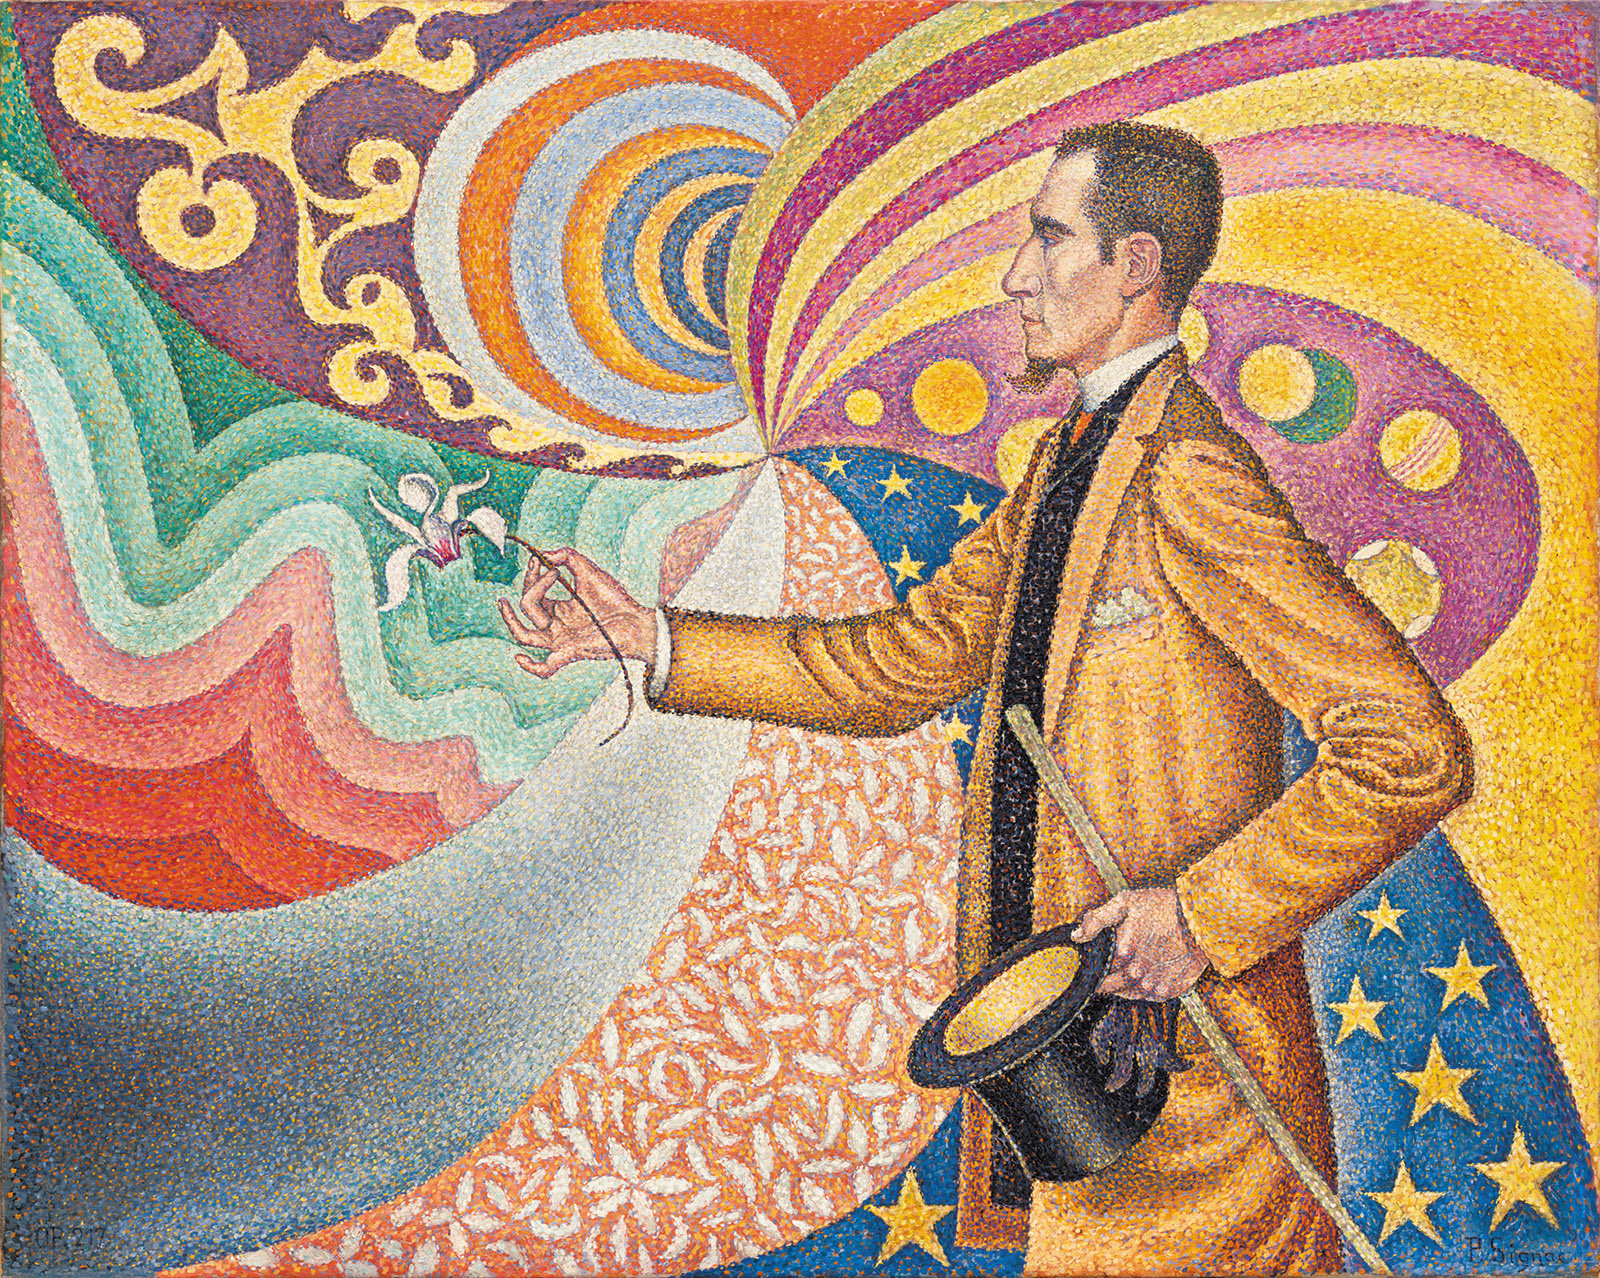 Paul Signac: Opus 217. Against the Enamel of a Background Rhythmic with Beats and Angles, Tones, and Tints, Portrait of M. Félix Fénéon in 1890, 1890